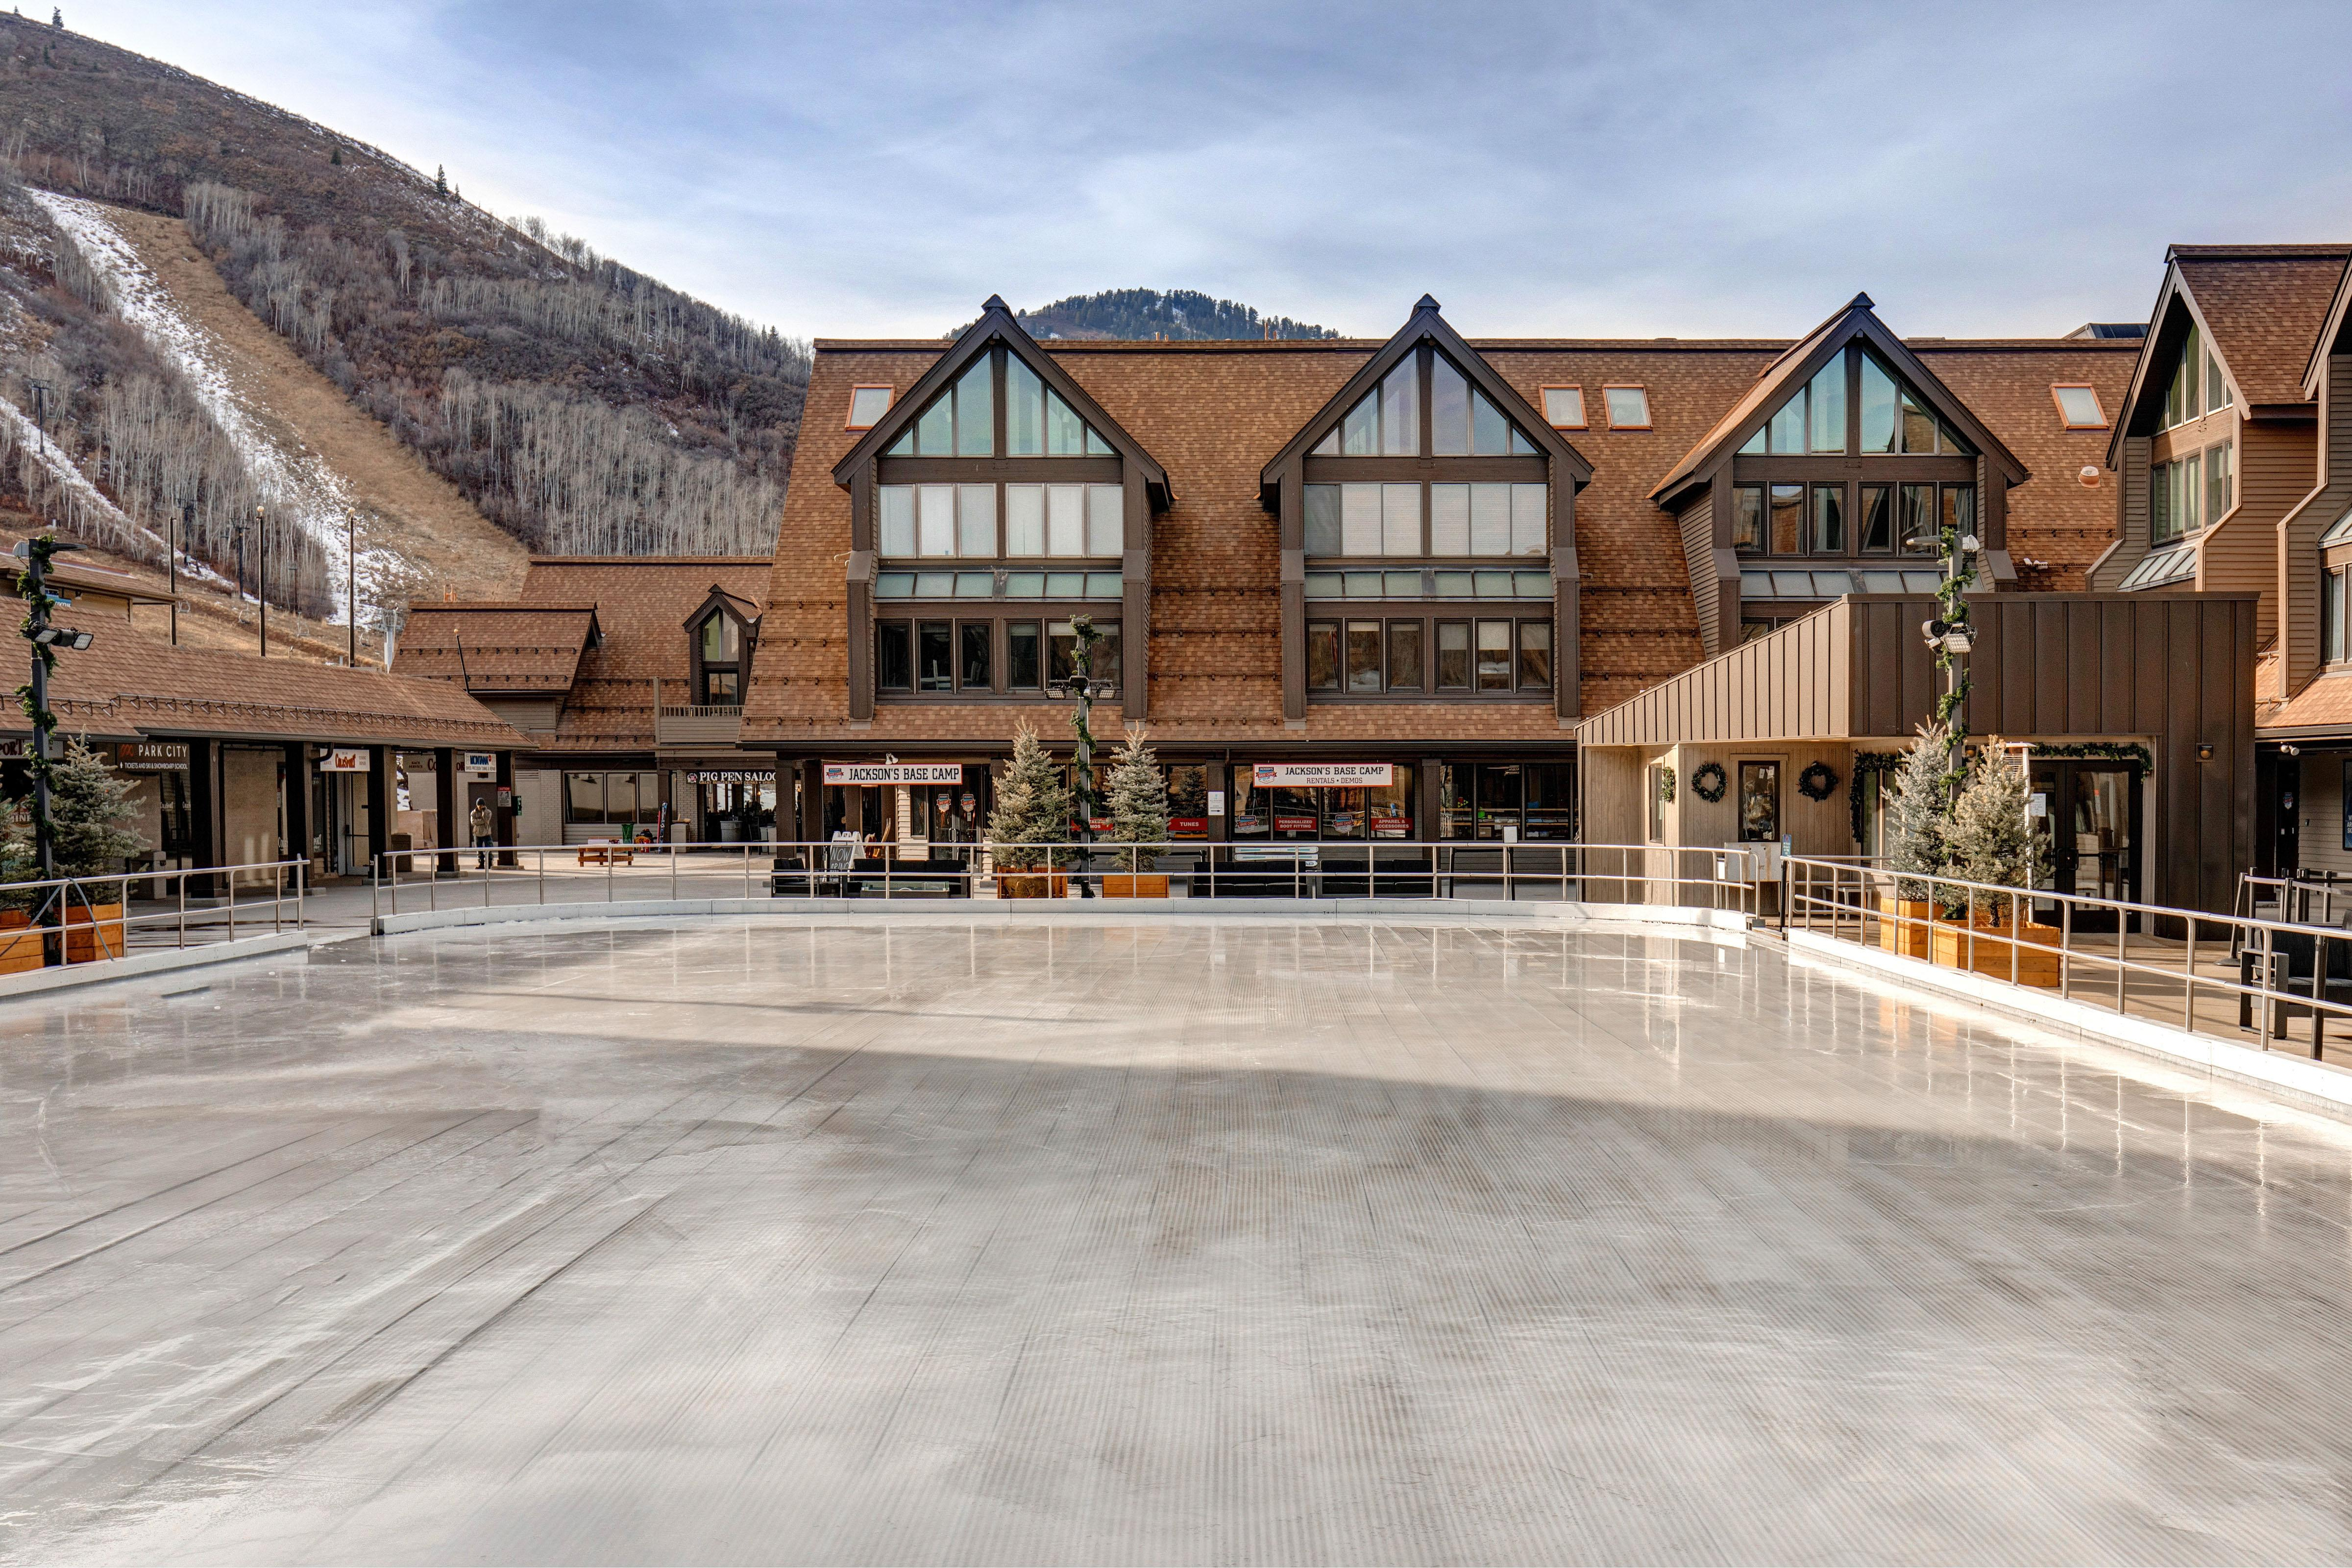 New Listing! Amazing 2-Unit Ski-in/Ski-out Rental